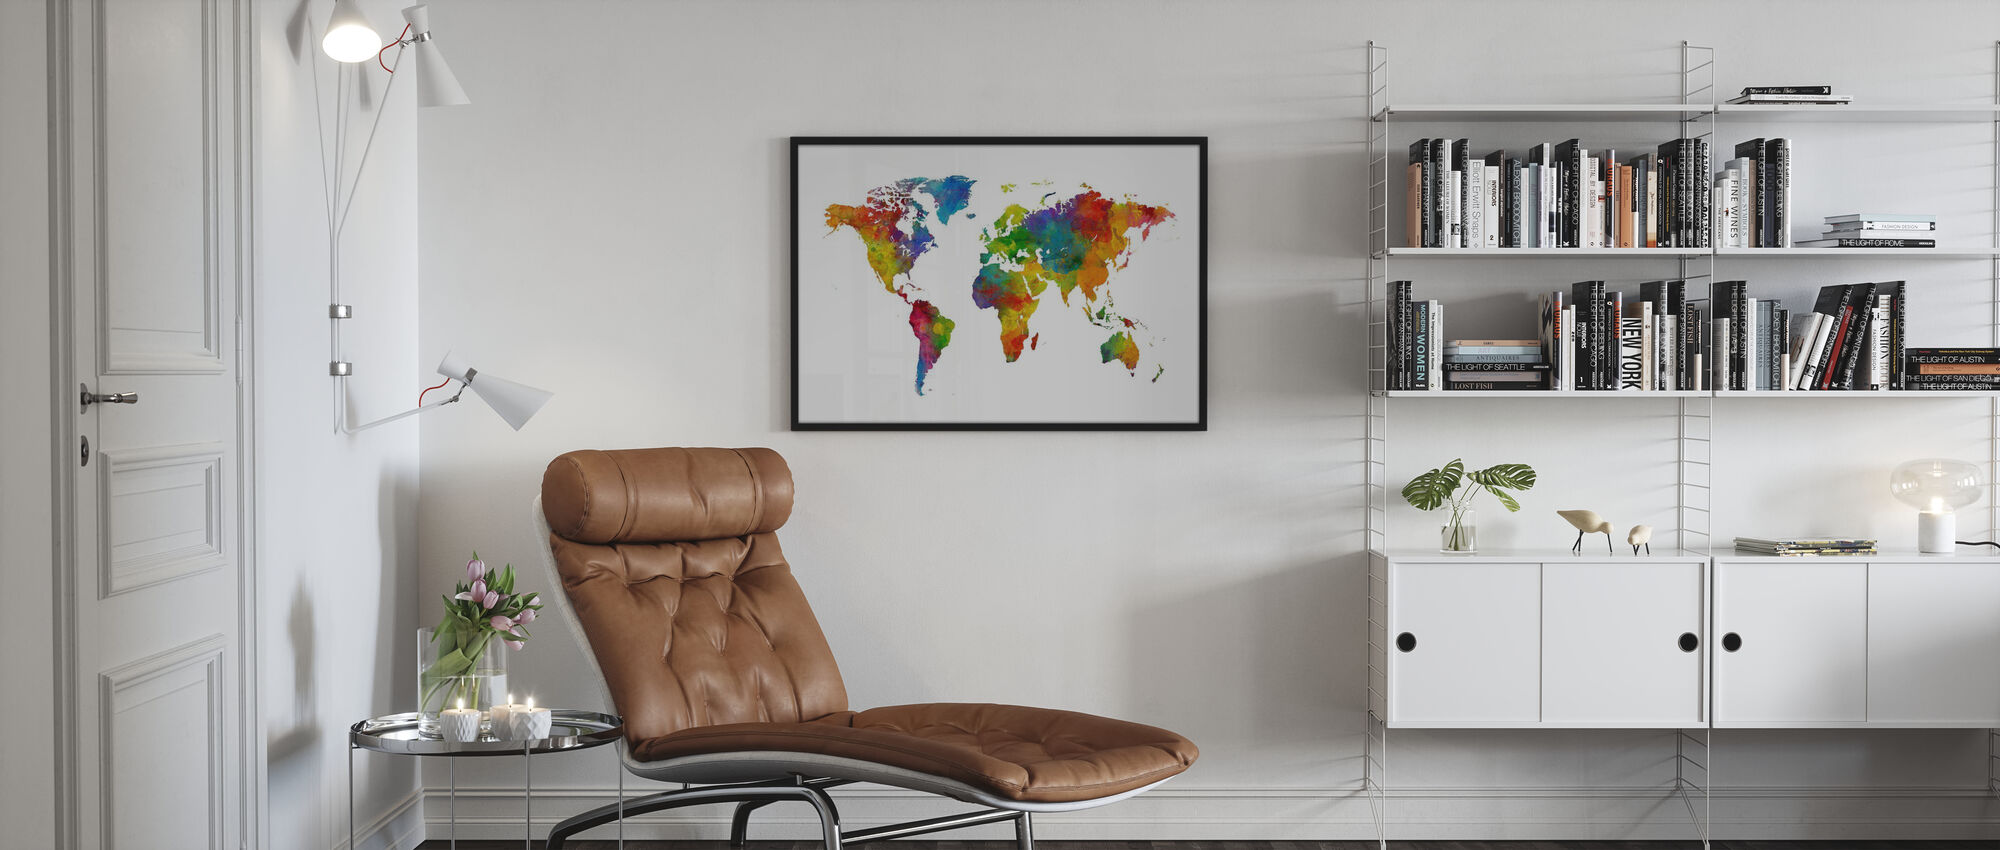 Watercolour World Map Multicolour - Poster - Living Room